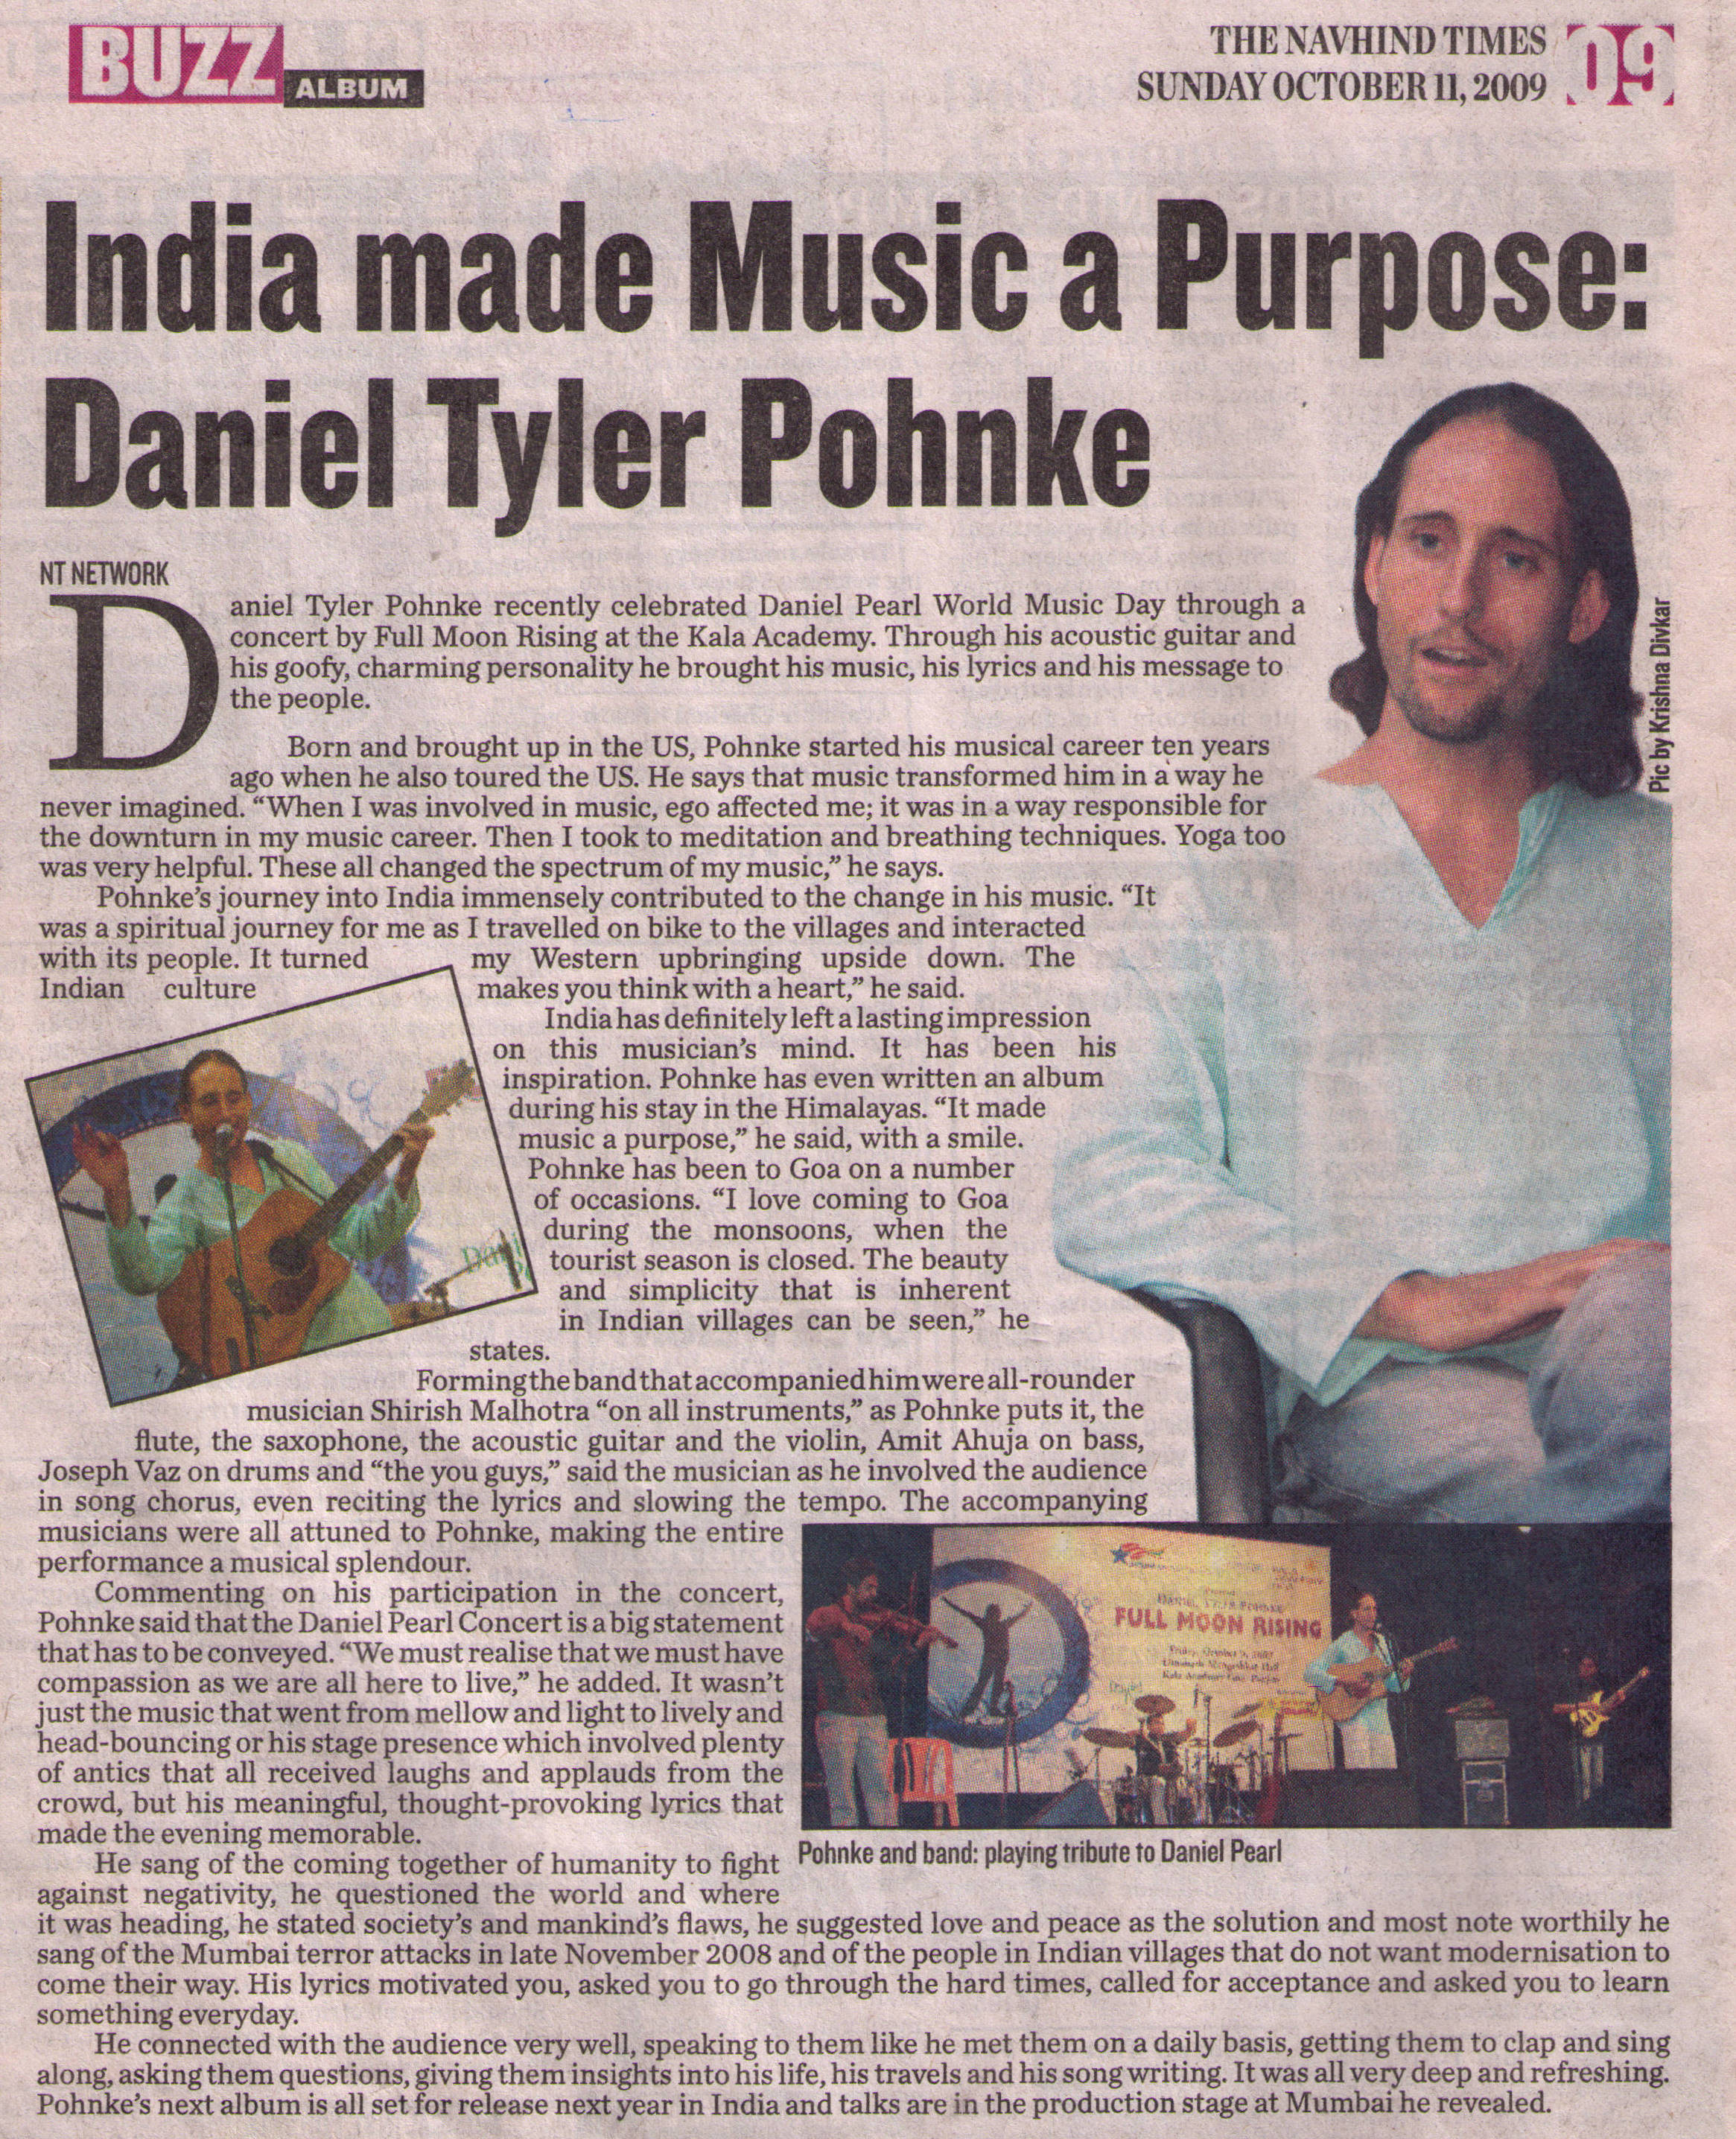 Click to read text: Daniel Tyler Pohnke of Full Moon Rising